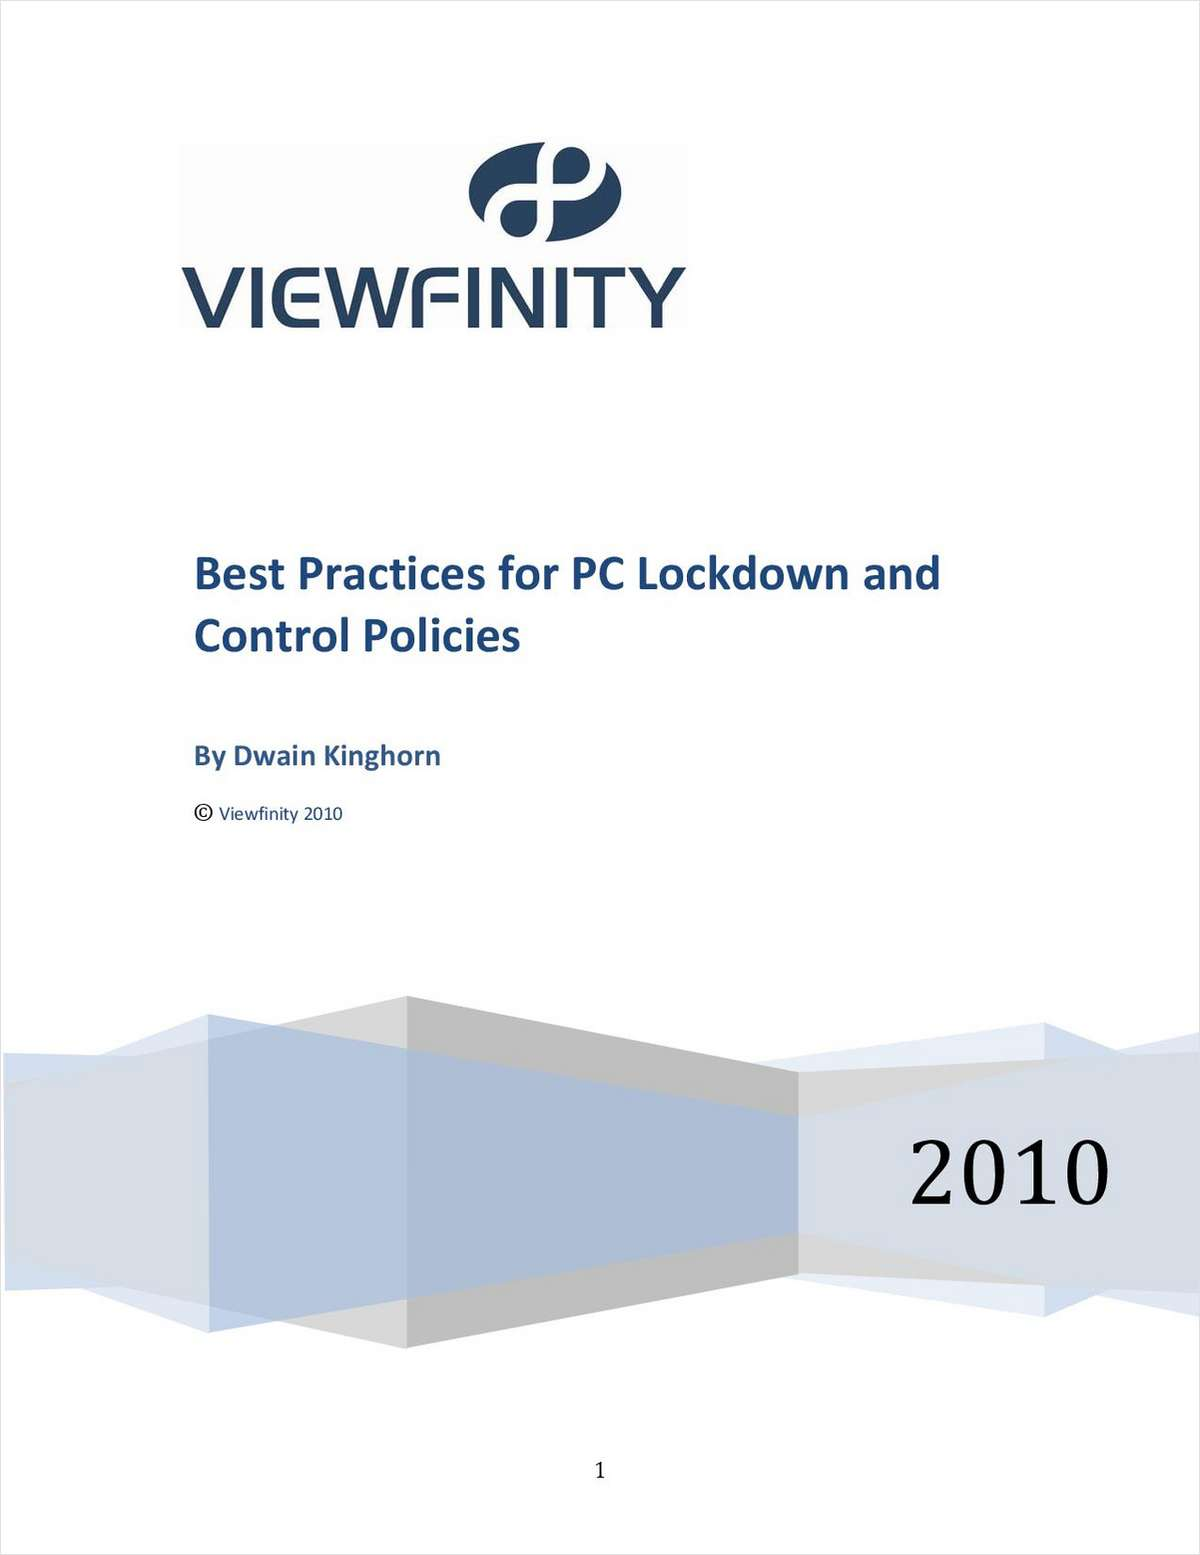 Best Practices for PC Lockdown and Control Policies